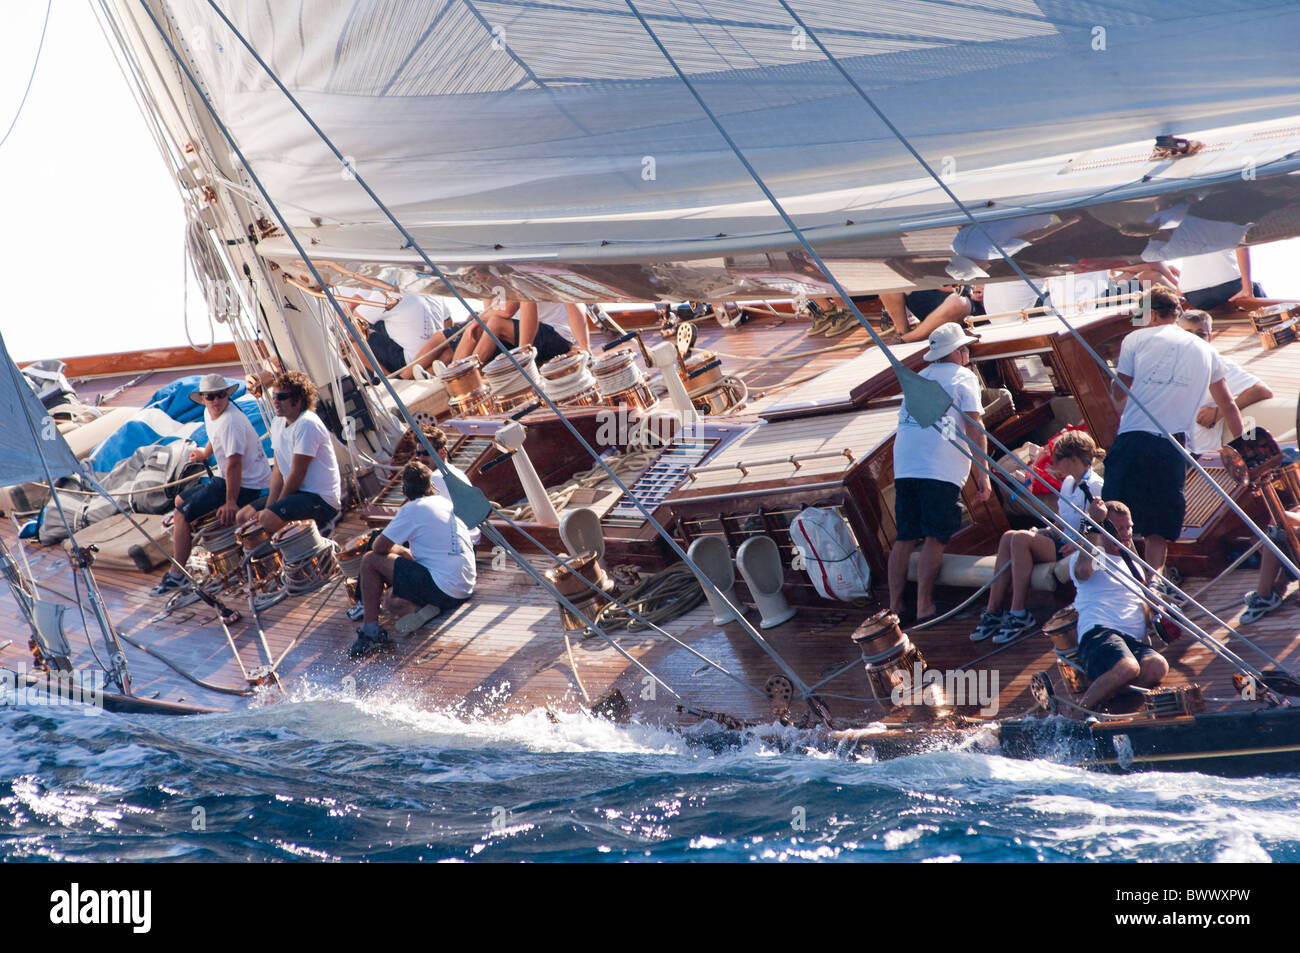 classic yacht shamrock v racing in the mediterranean off cannes in stock photo royalty free. Black Bedroom Furniture Sets. Home Design Ideas